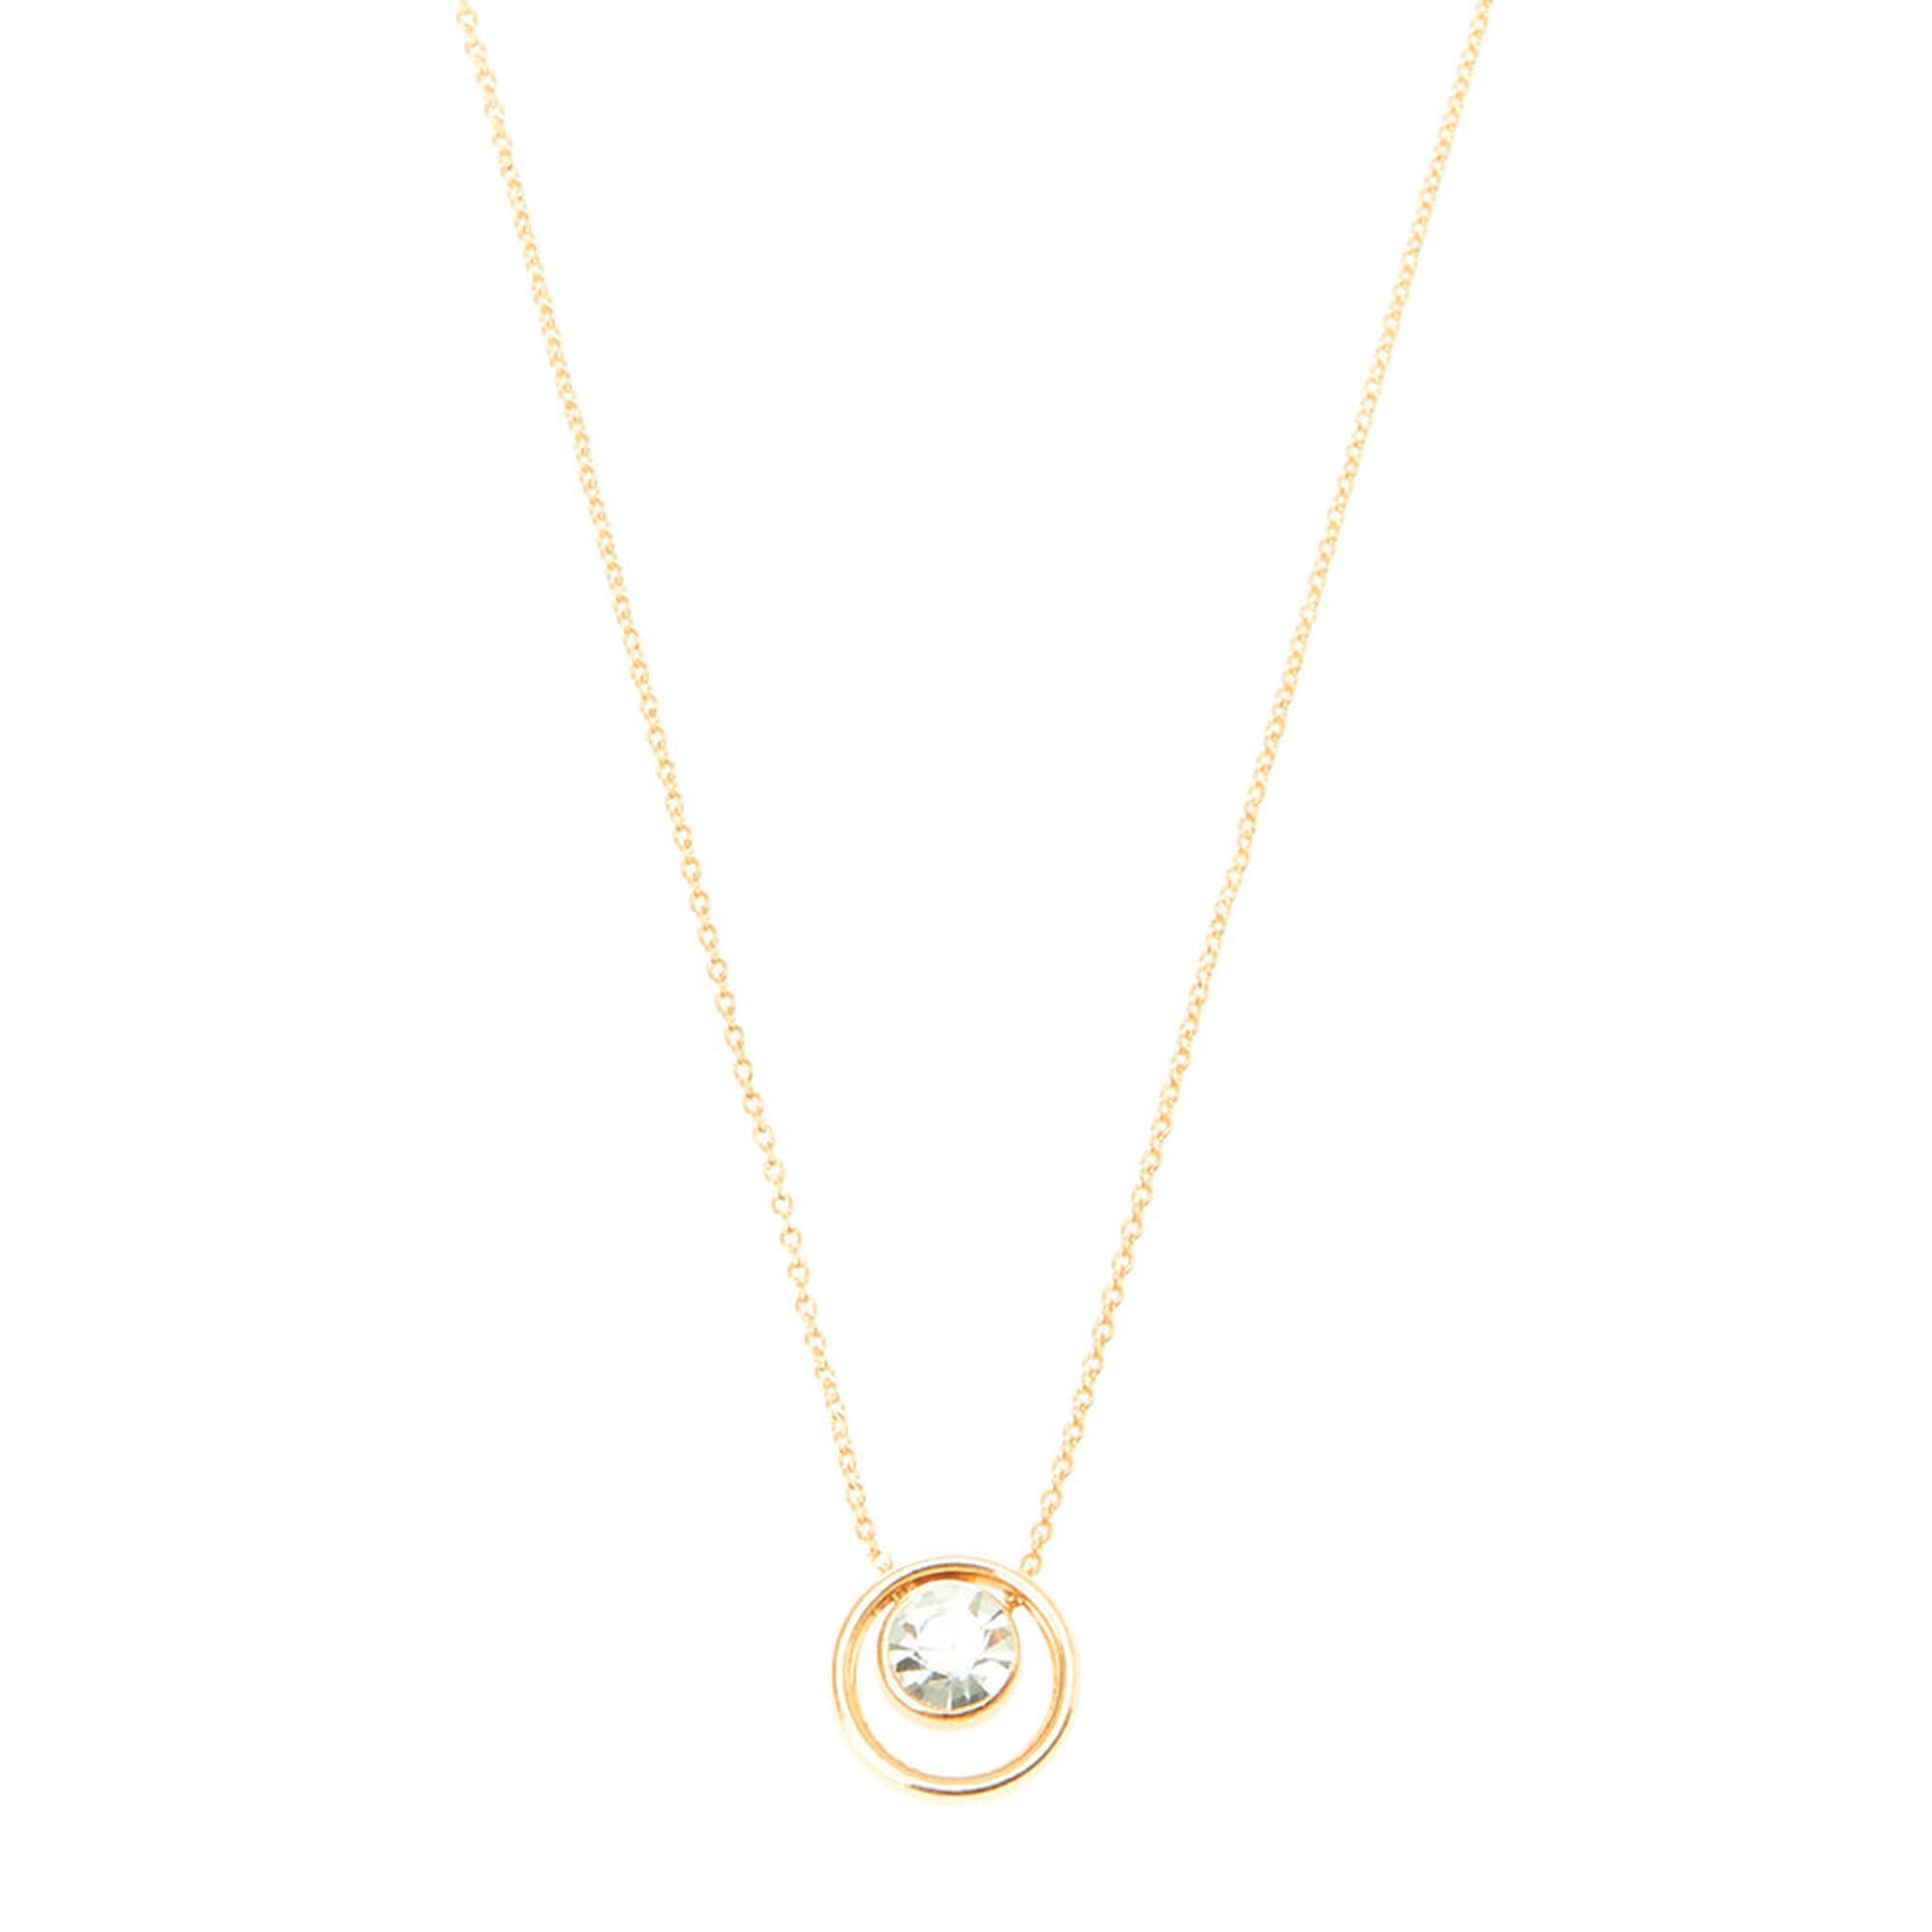 Gold crystal circle pendant necklace claires us gold crystal circle pendant necklace aloadofball Image collections